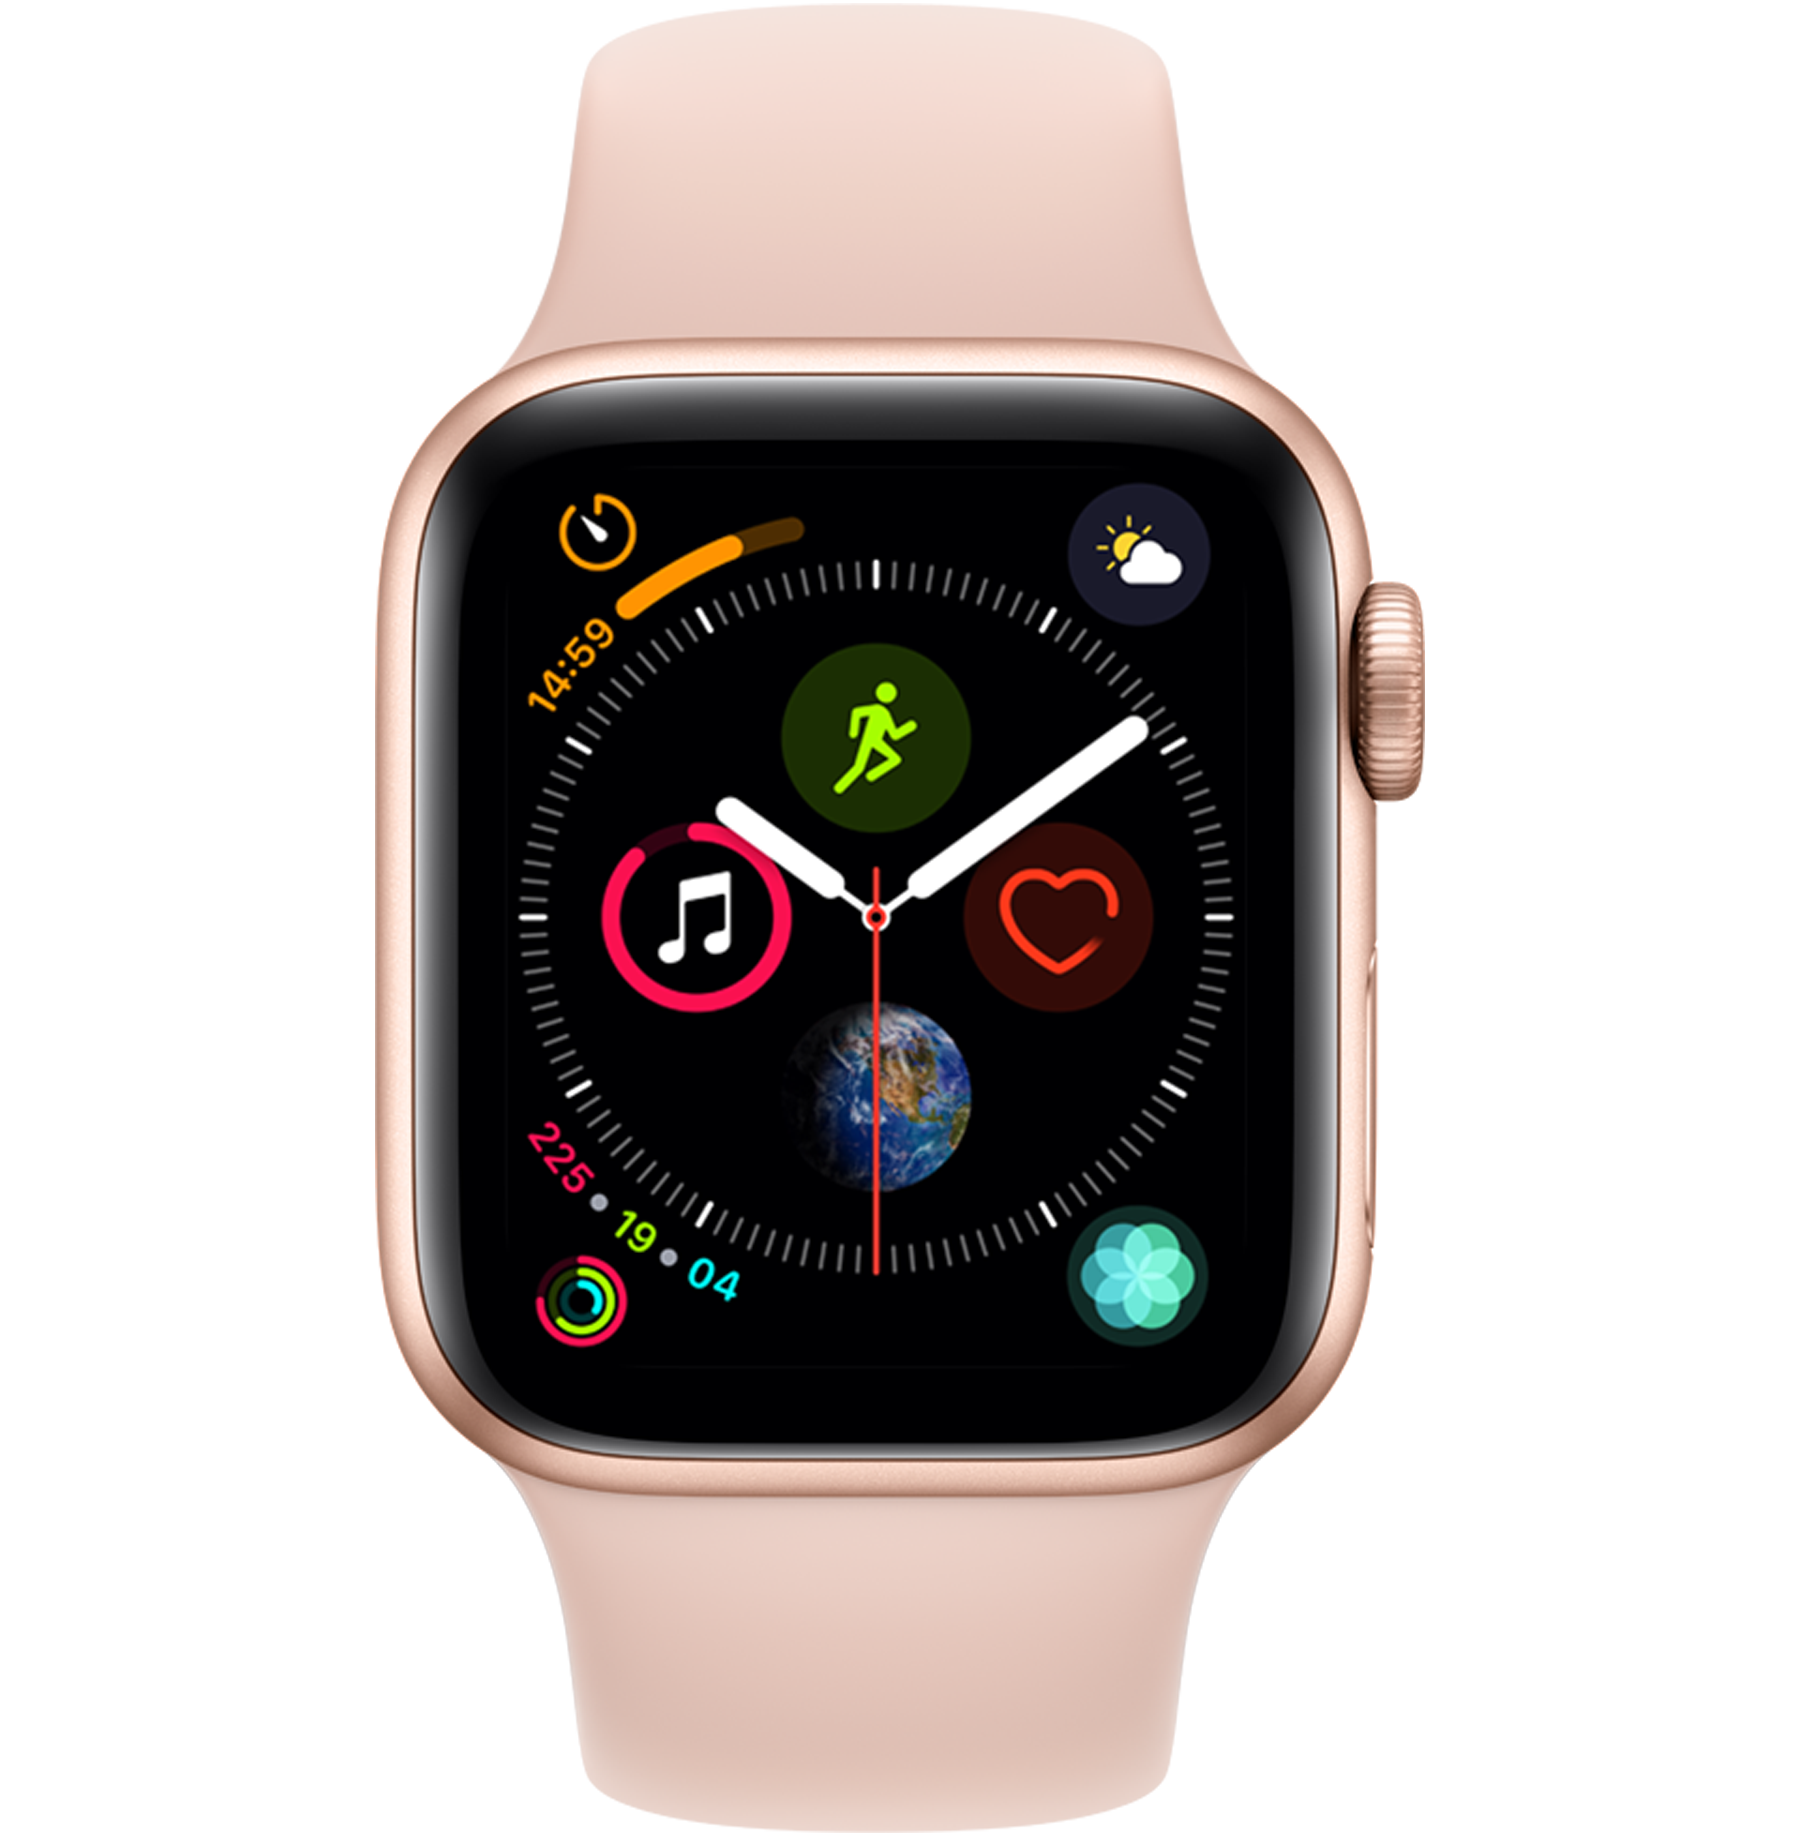 A side view of the Apple Watch Series 4 in Space Grey.